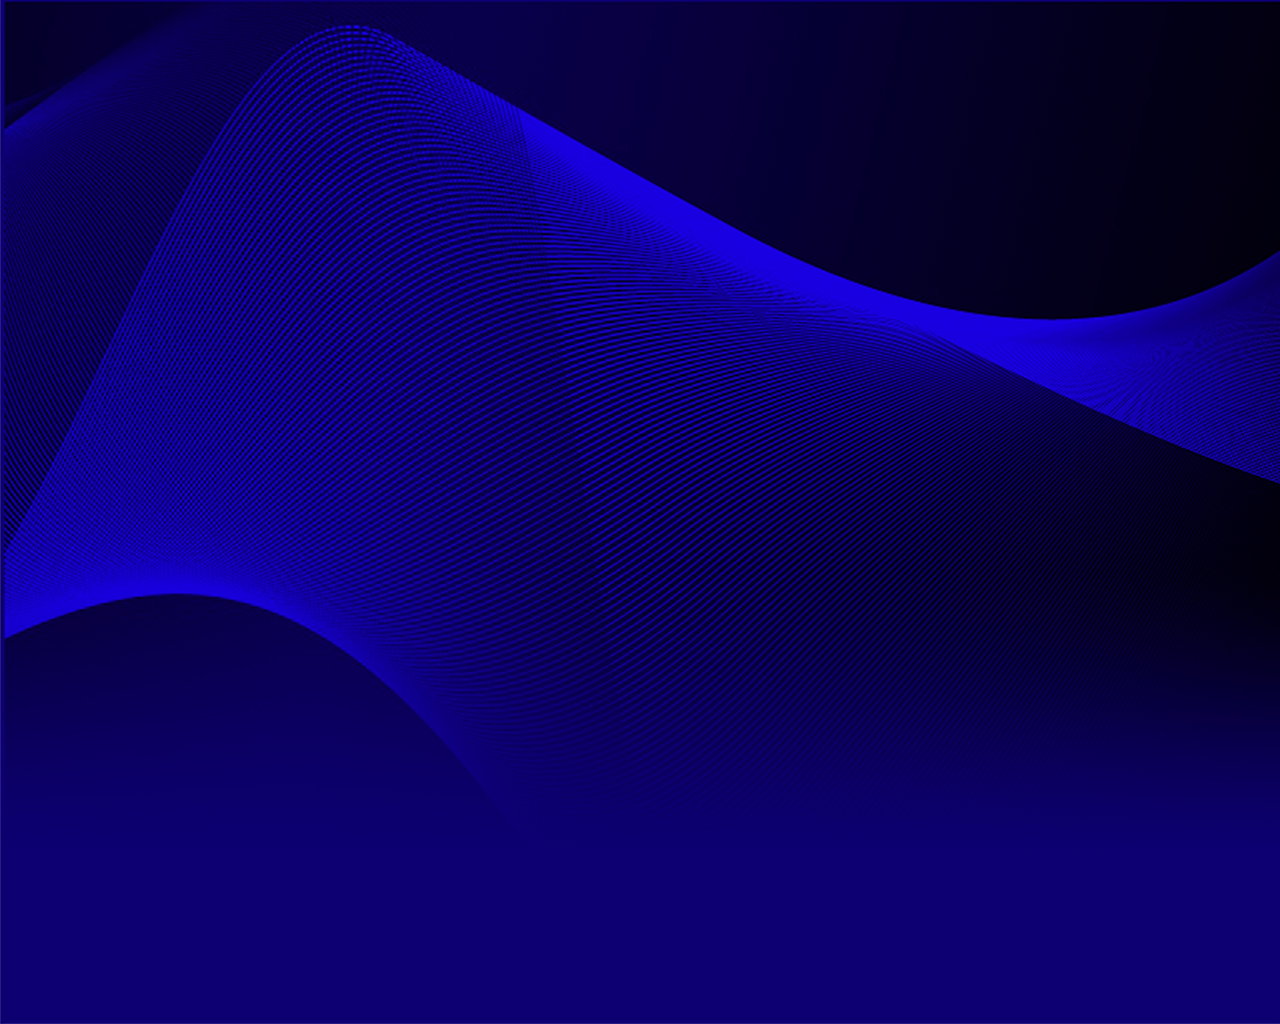 Free Download Royal Blue Wavy Abstract Web Background